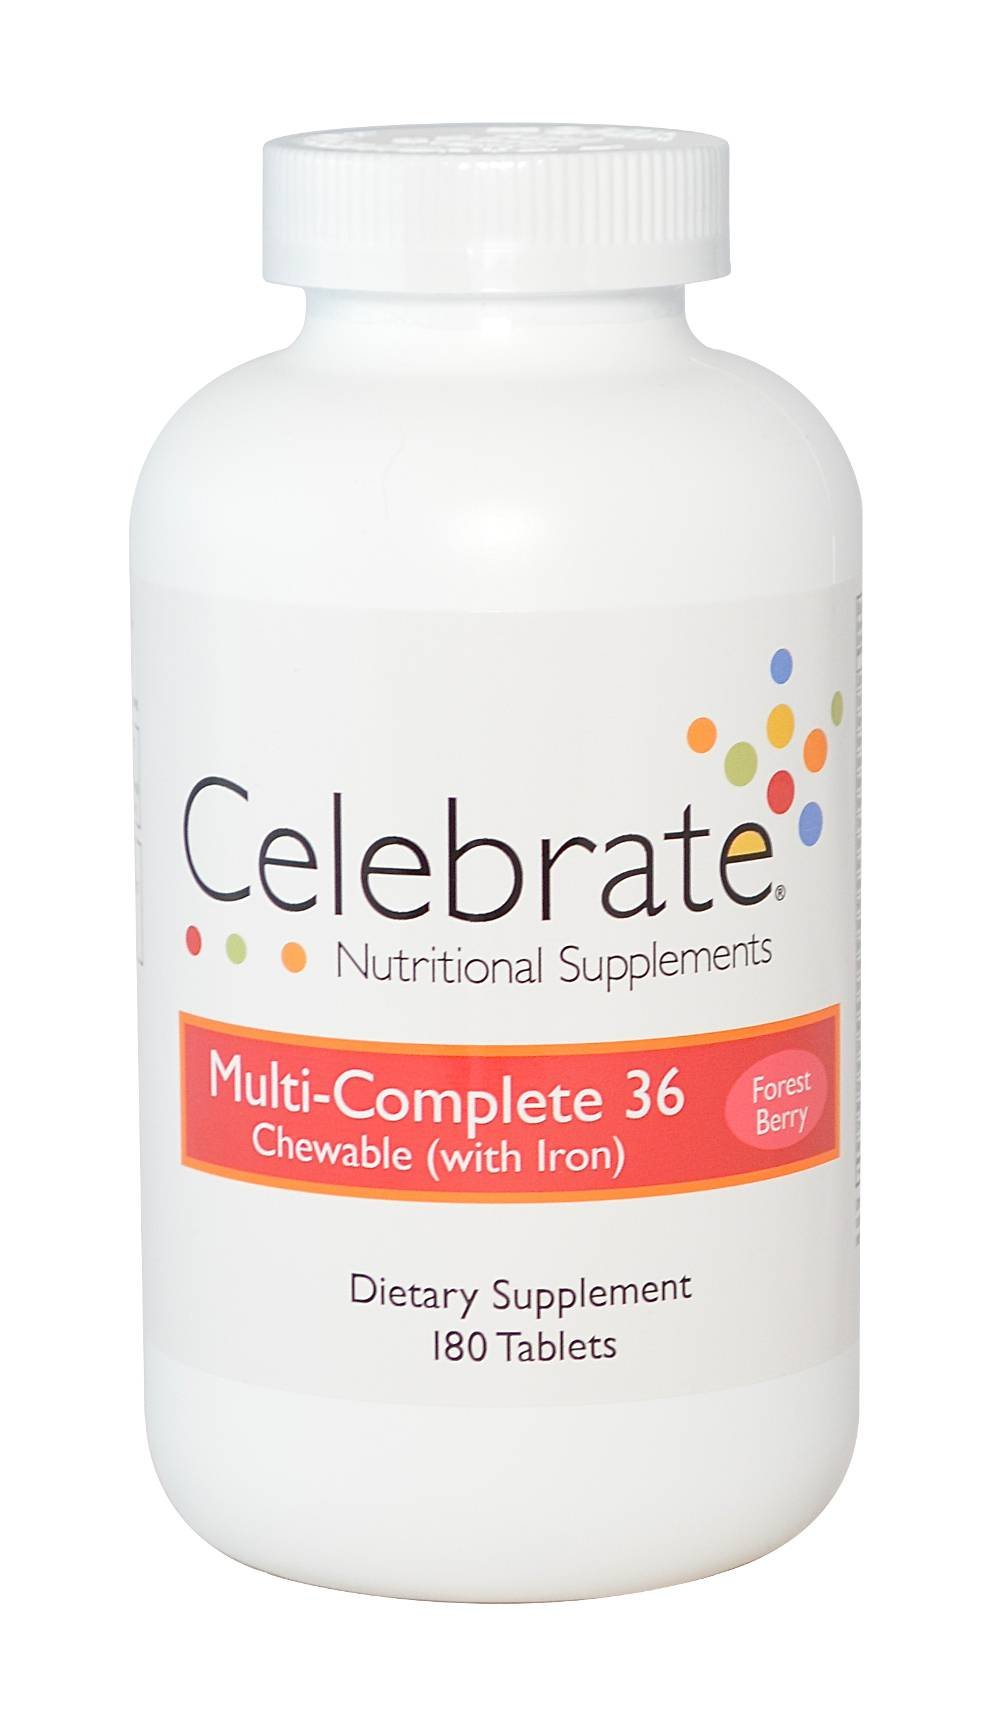 Celebrate Multi-complete w/ Iron Forest Berry 180 count